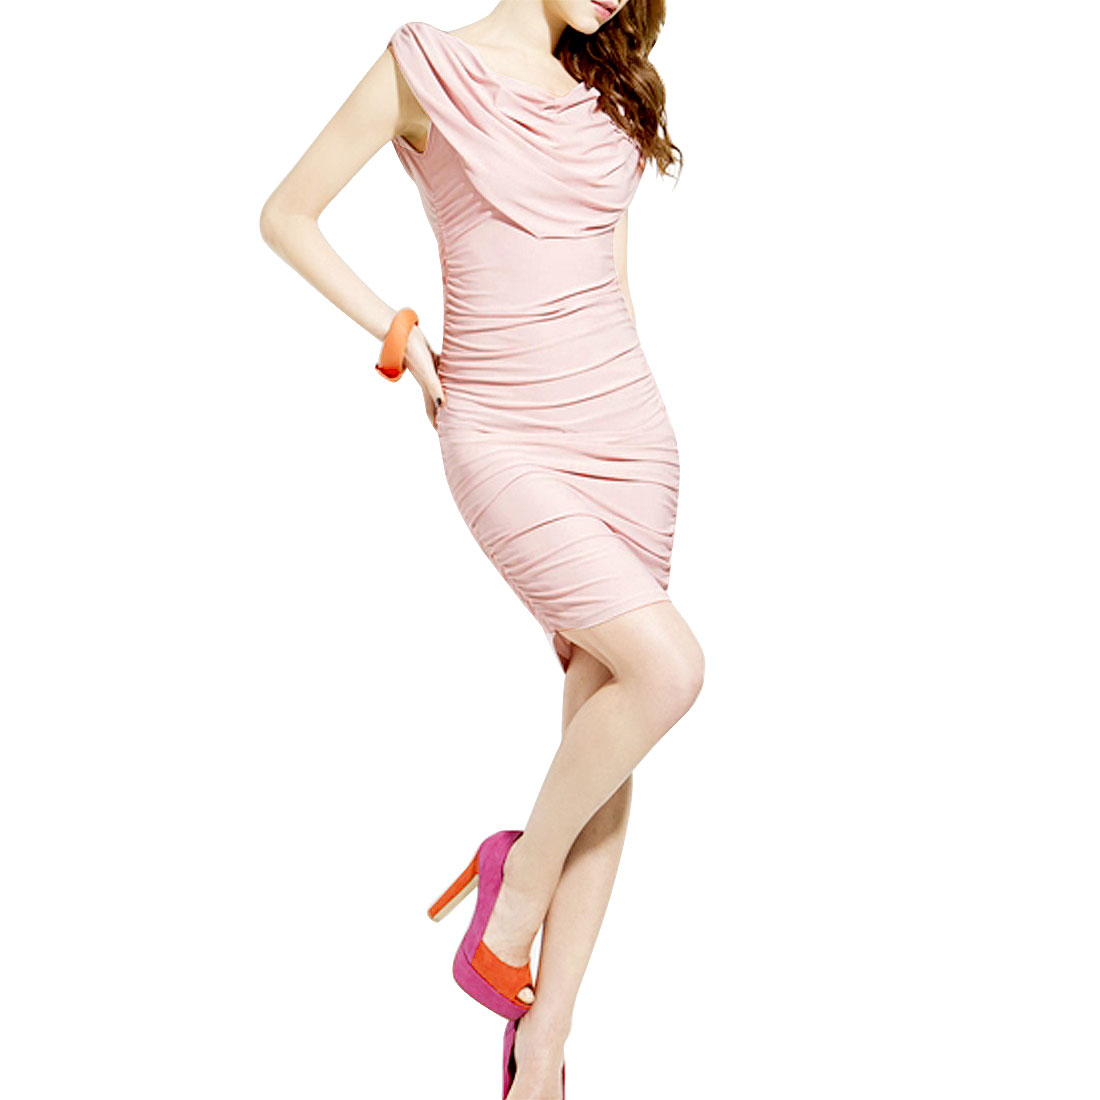 Solid Pink Sleevesless Sexy Slim Pullover Mini Sheath Dress XS for Ladies